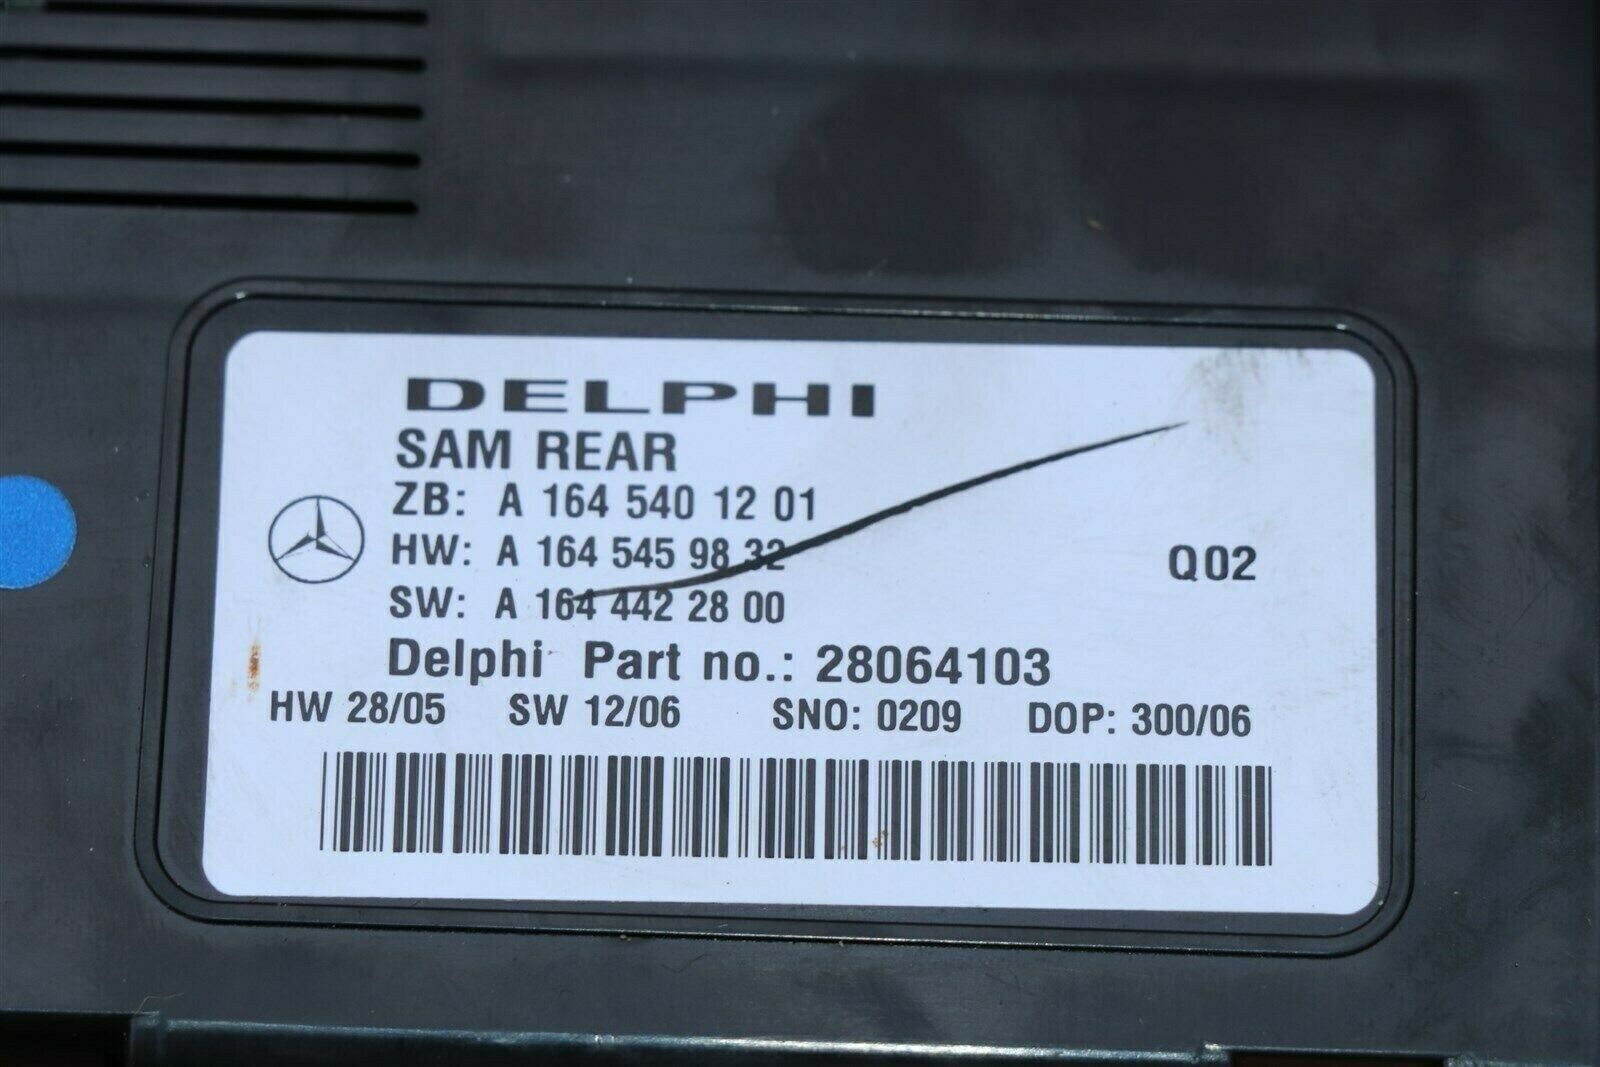 Mercedes Signal Aquisition Module SAM REAR A1645401201 Delphi 28064103